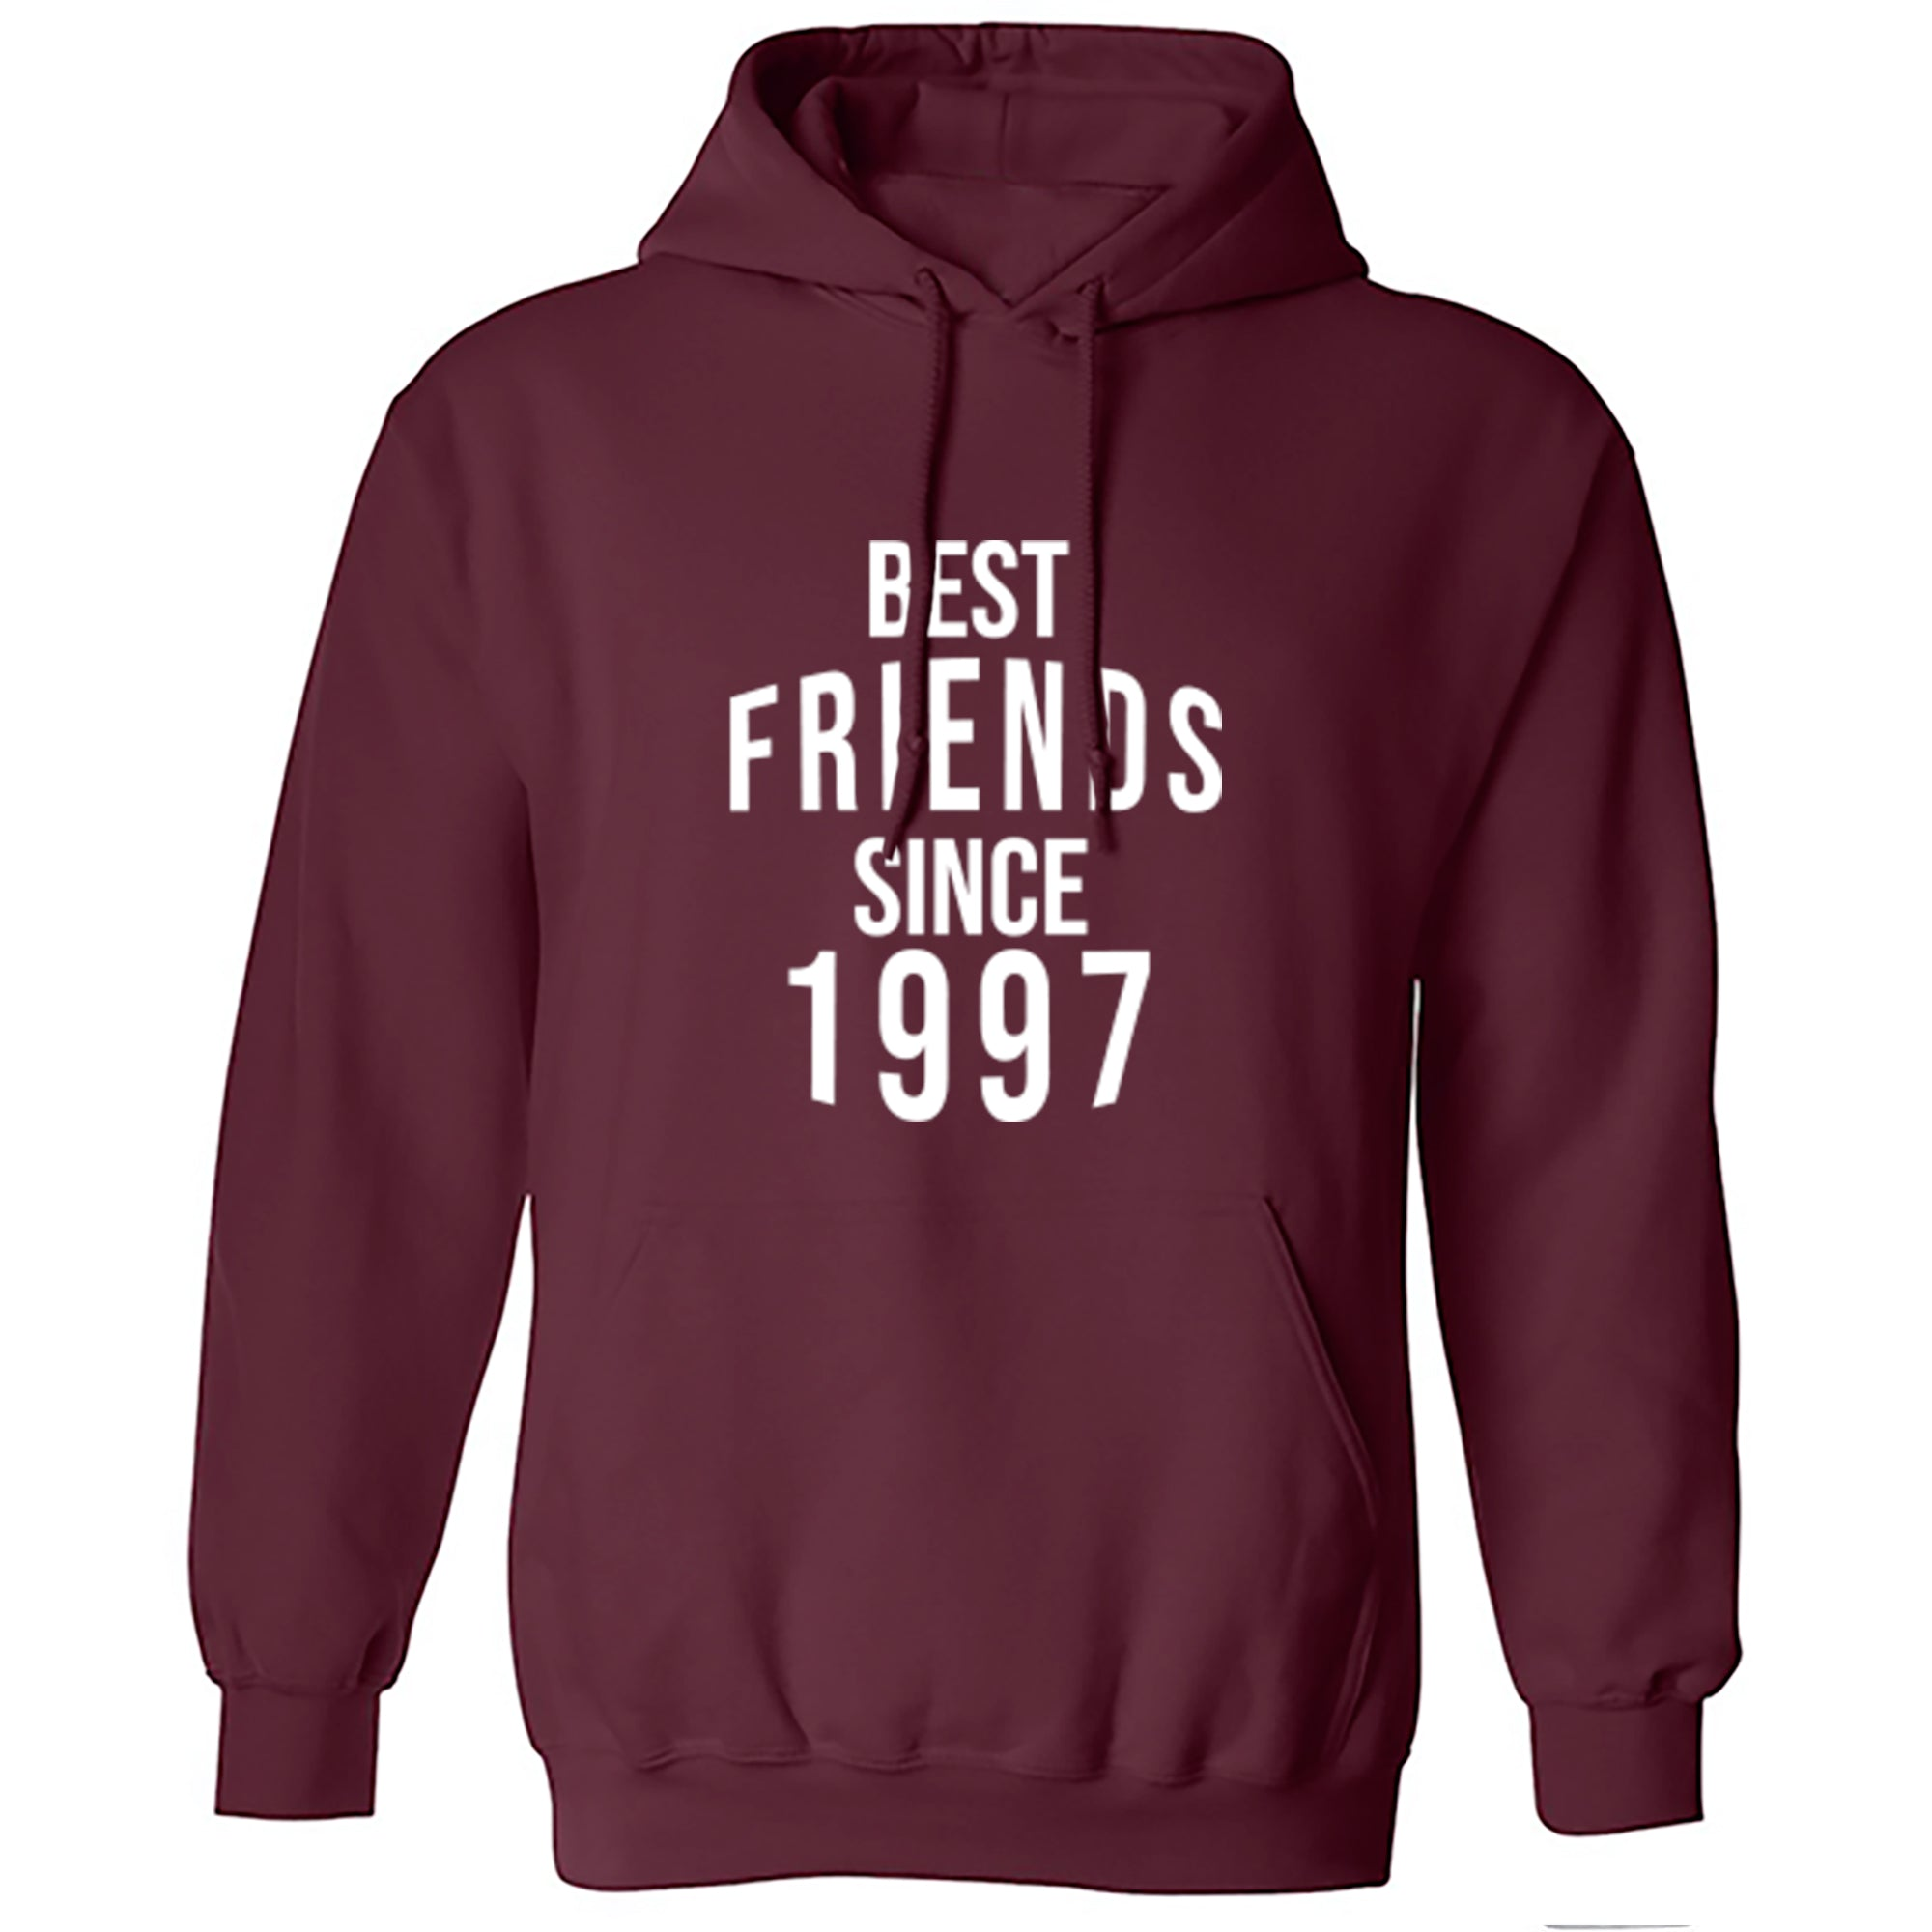 Best Friends Since 1997 Unisex Hoodie S0576 - Illustrated Identity Ltd.